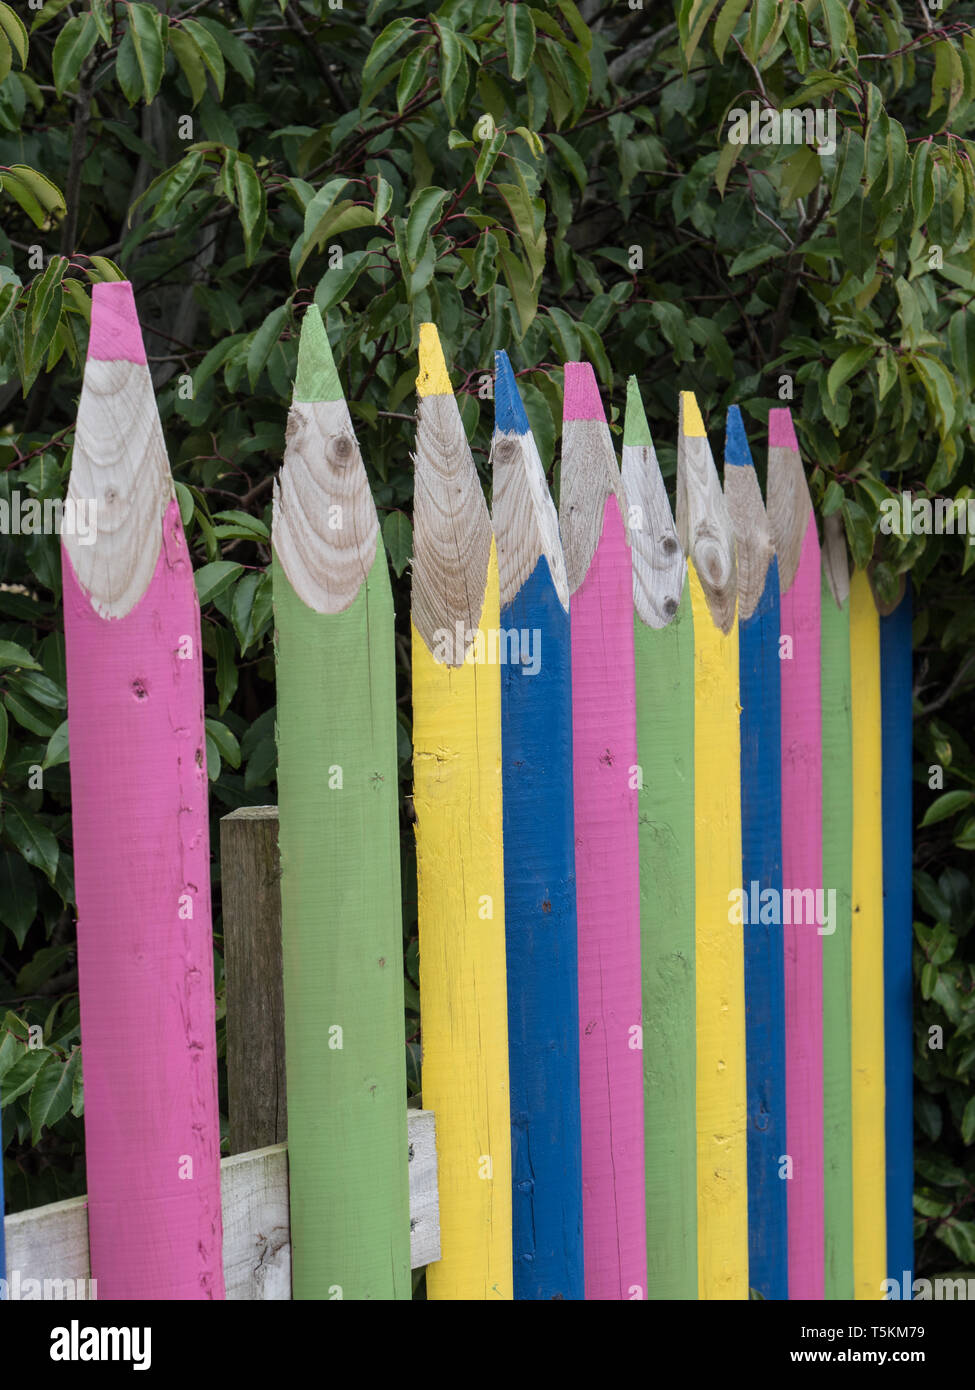 A colourful fence with posts shaped and stylised as pencils - Stock Image